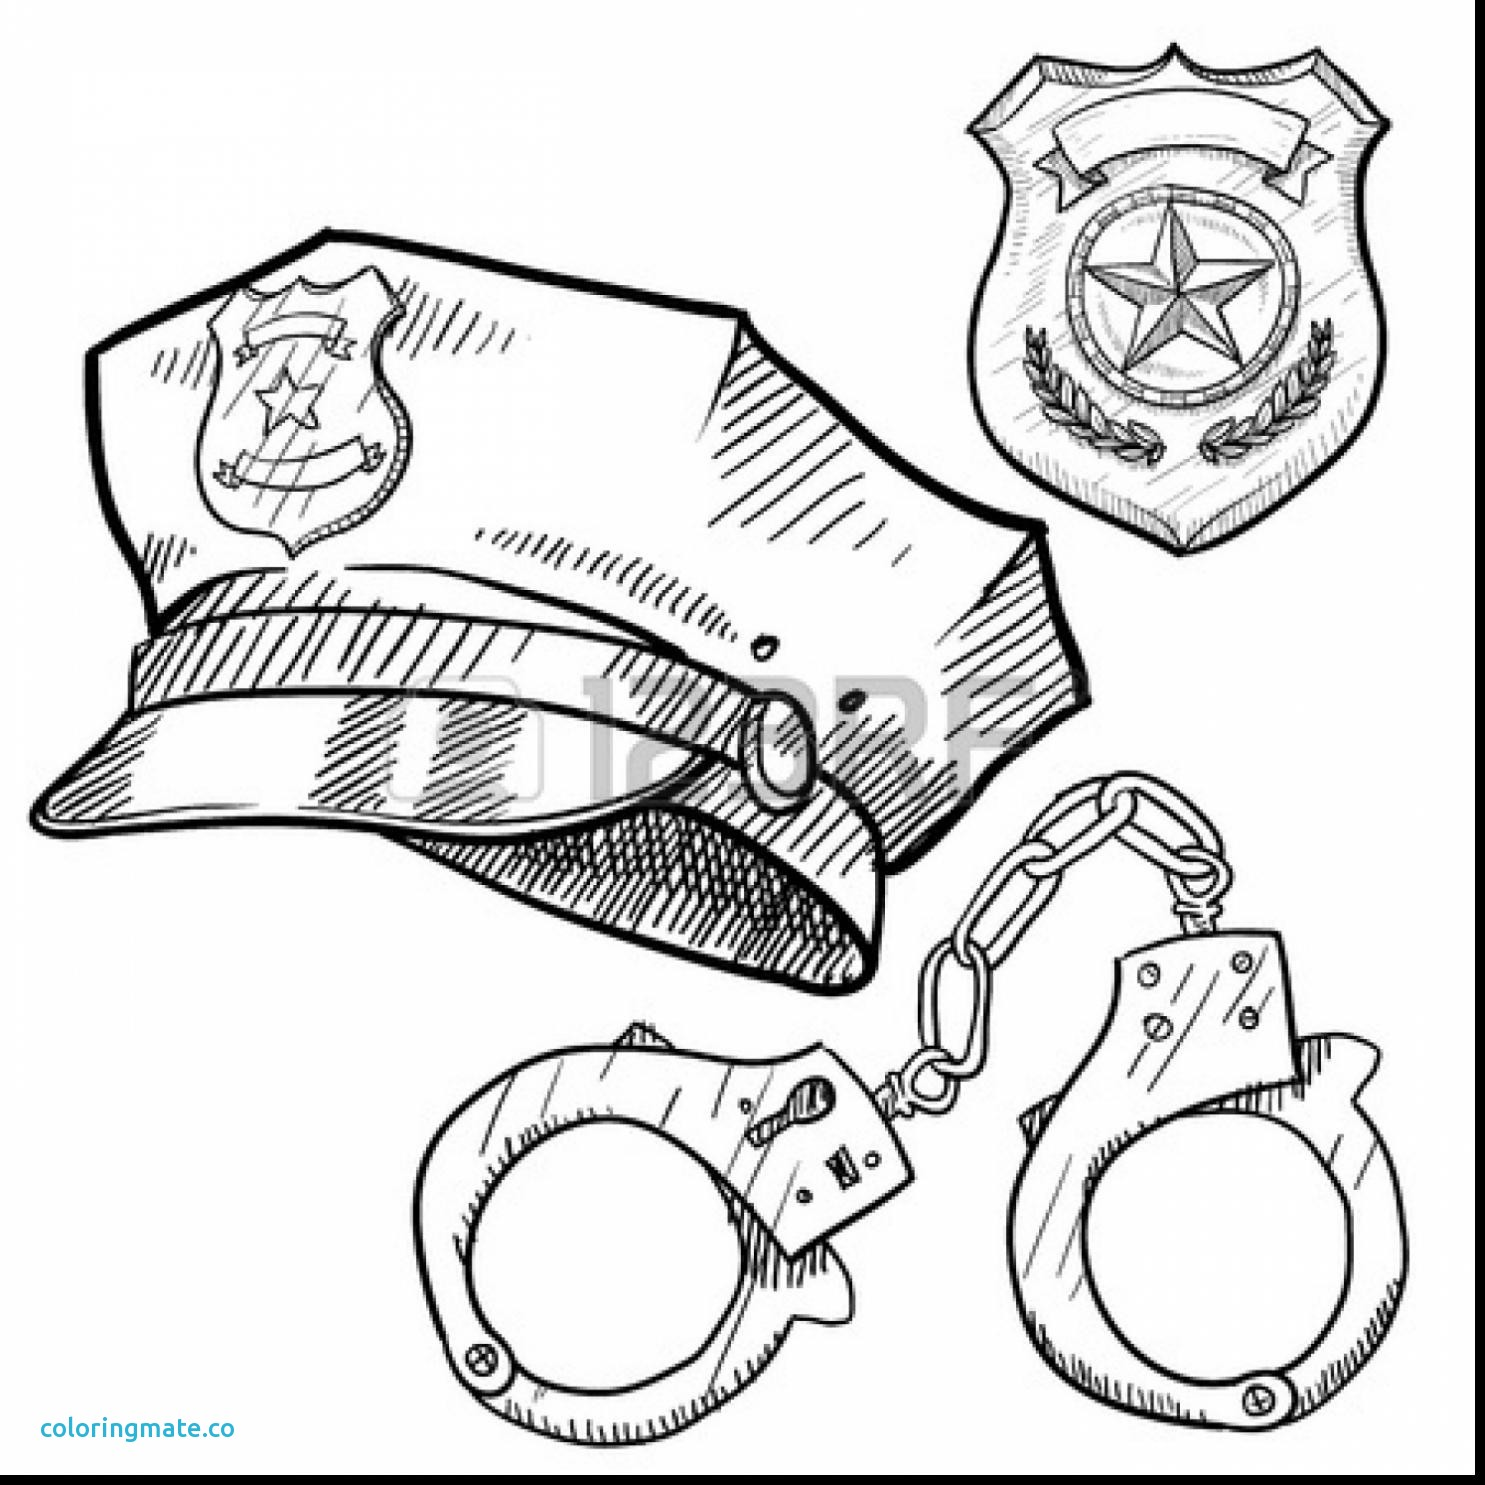 Police Badge Drawing At Getdrawings